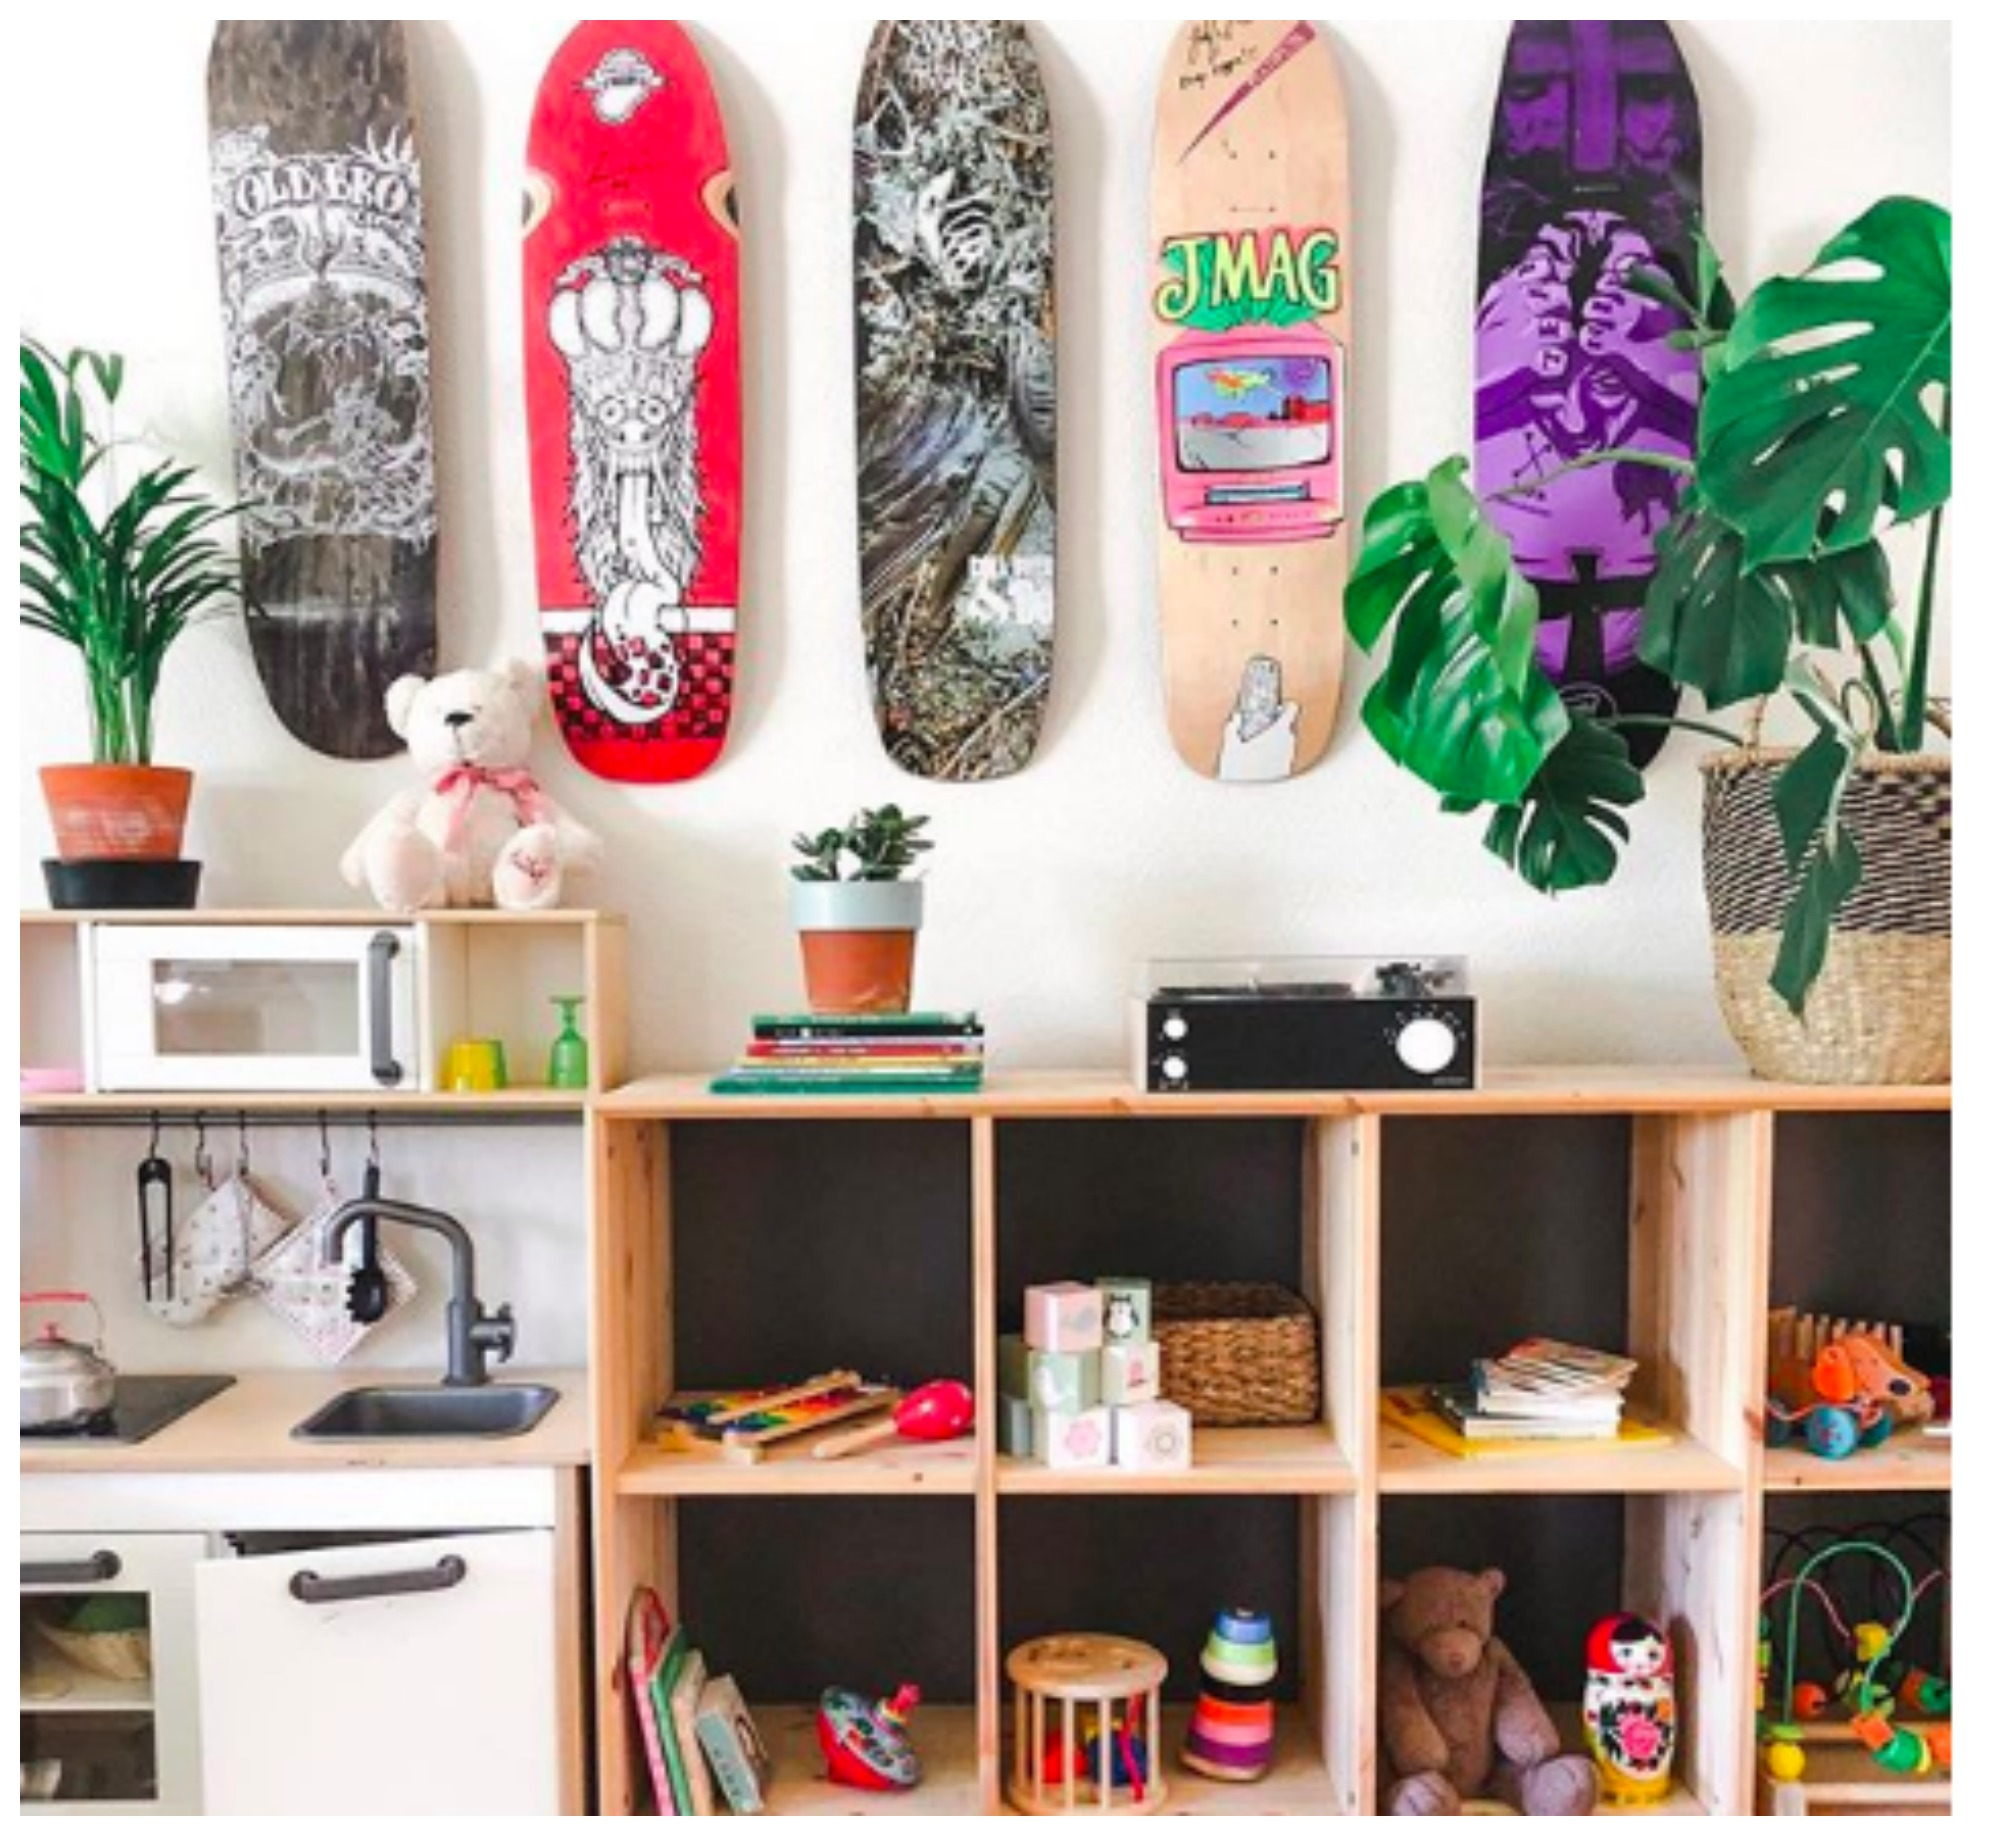 Home Tour: Earthly Urban Design Home of Christin in Stockholm Sweden is a Skate Board Lovers Dream